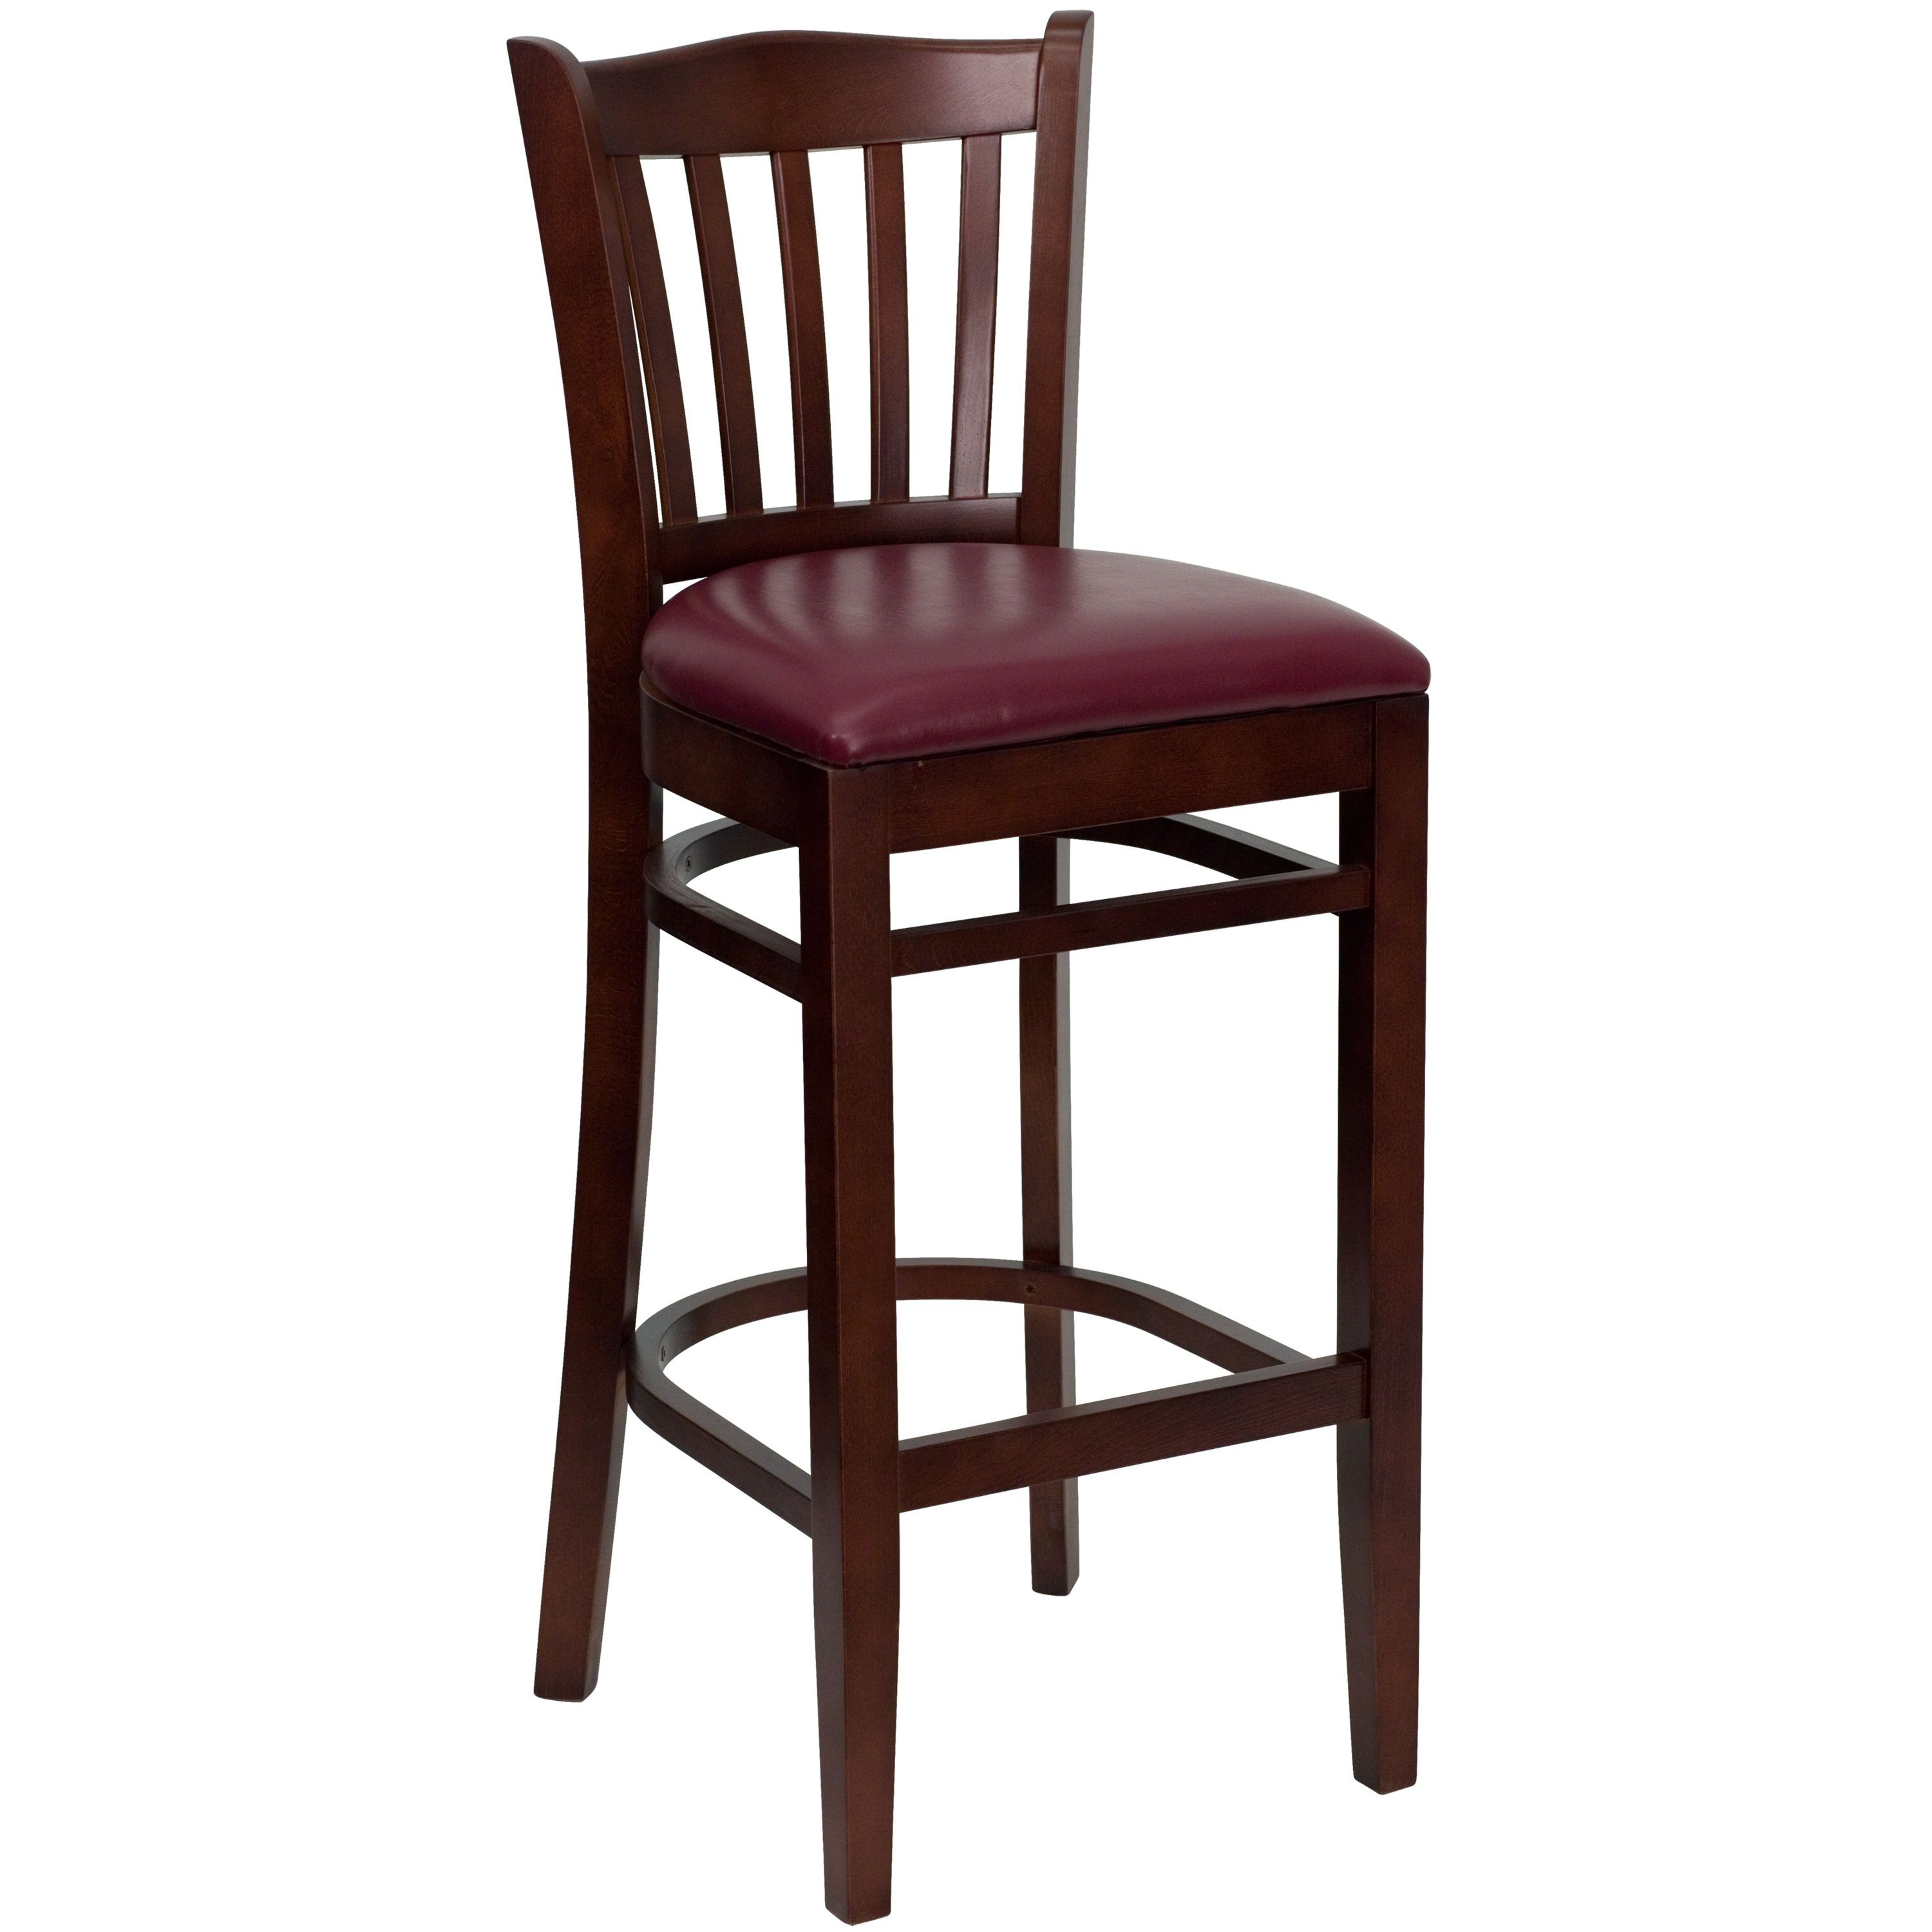 Flash Furniture XU-DGW0008BARVRT-MAH-BURV-GG Vertical Slat Back Mahogany Wood Bar Stool with Burgundy Vinyl Seat